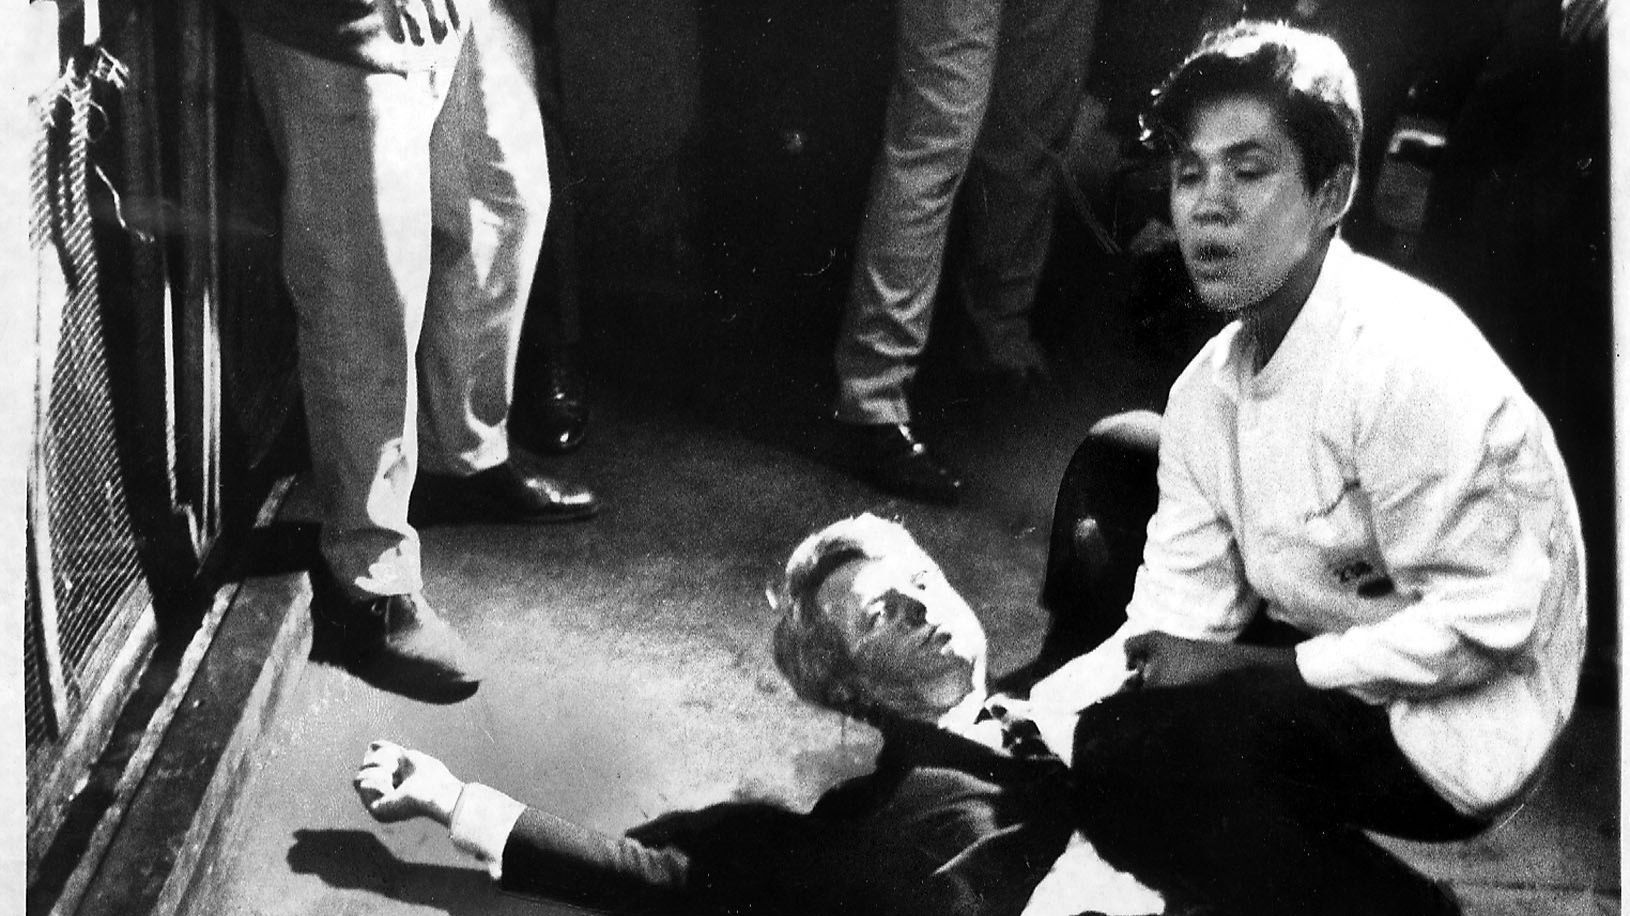 Sen. Robert F. Kennedy lies on the floor of the Ambassador Hotel kitchen cradled by busboy Juan Romero moments after he was shot and mortally wounded in 1968.